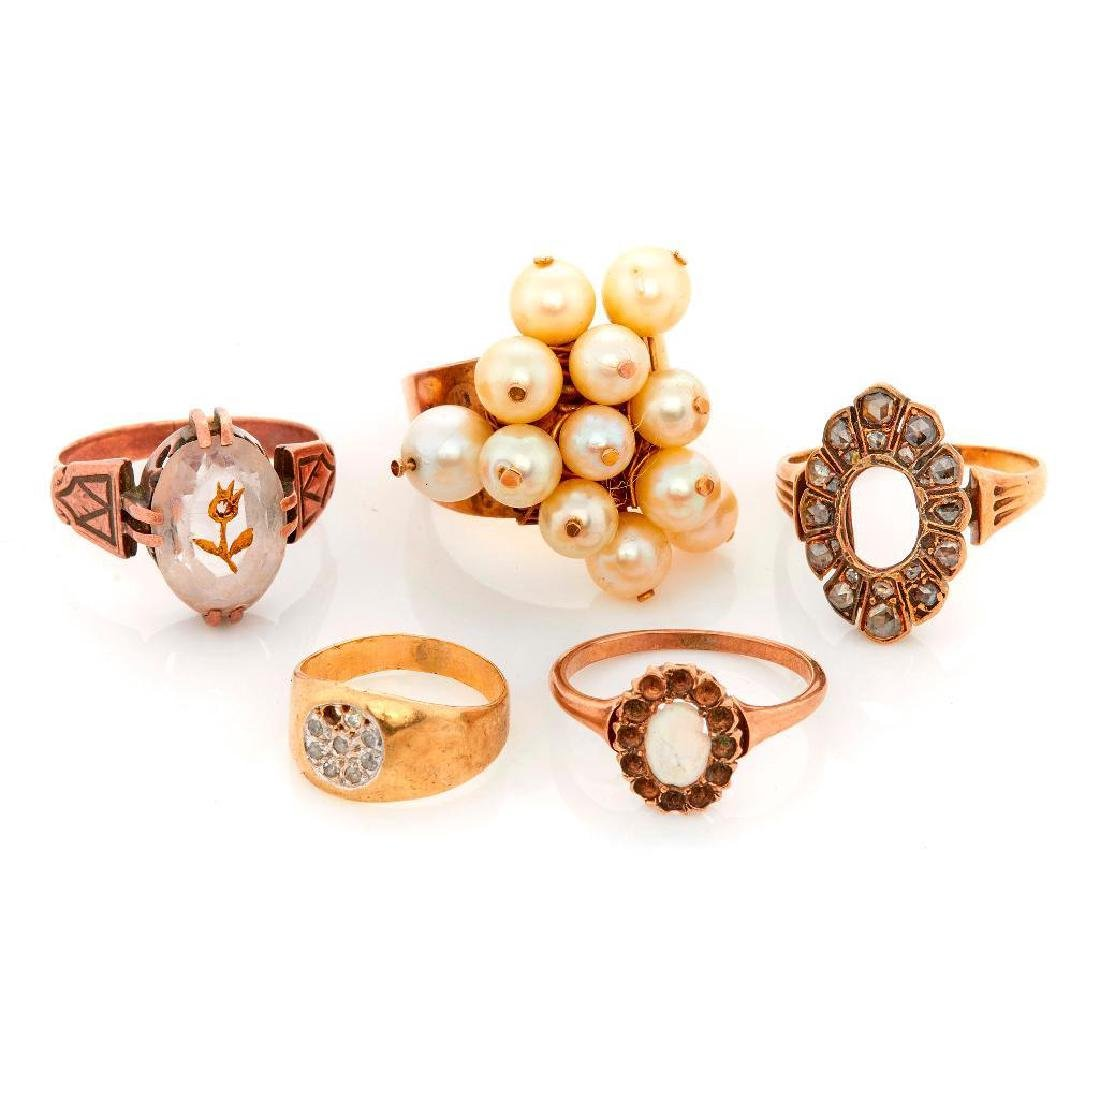 Collection of gem-set and gold jewelry